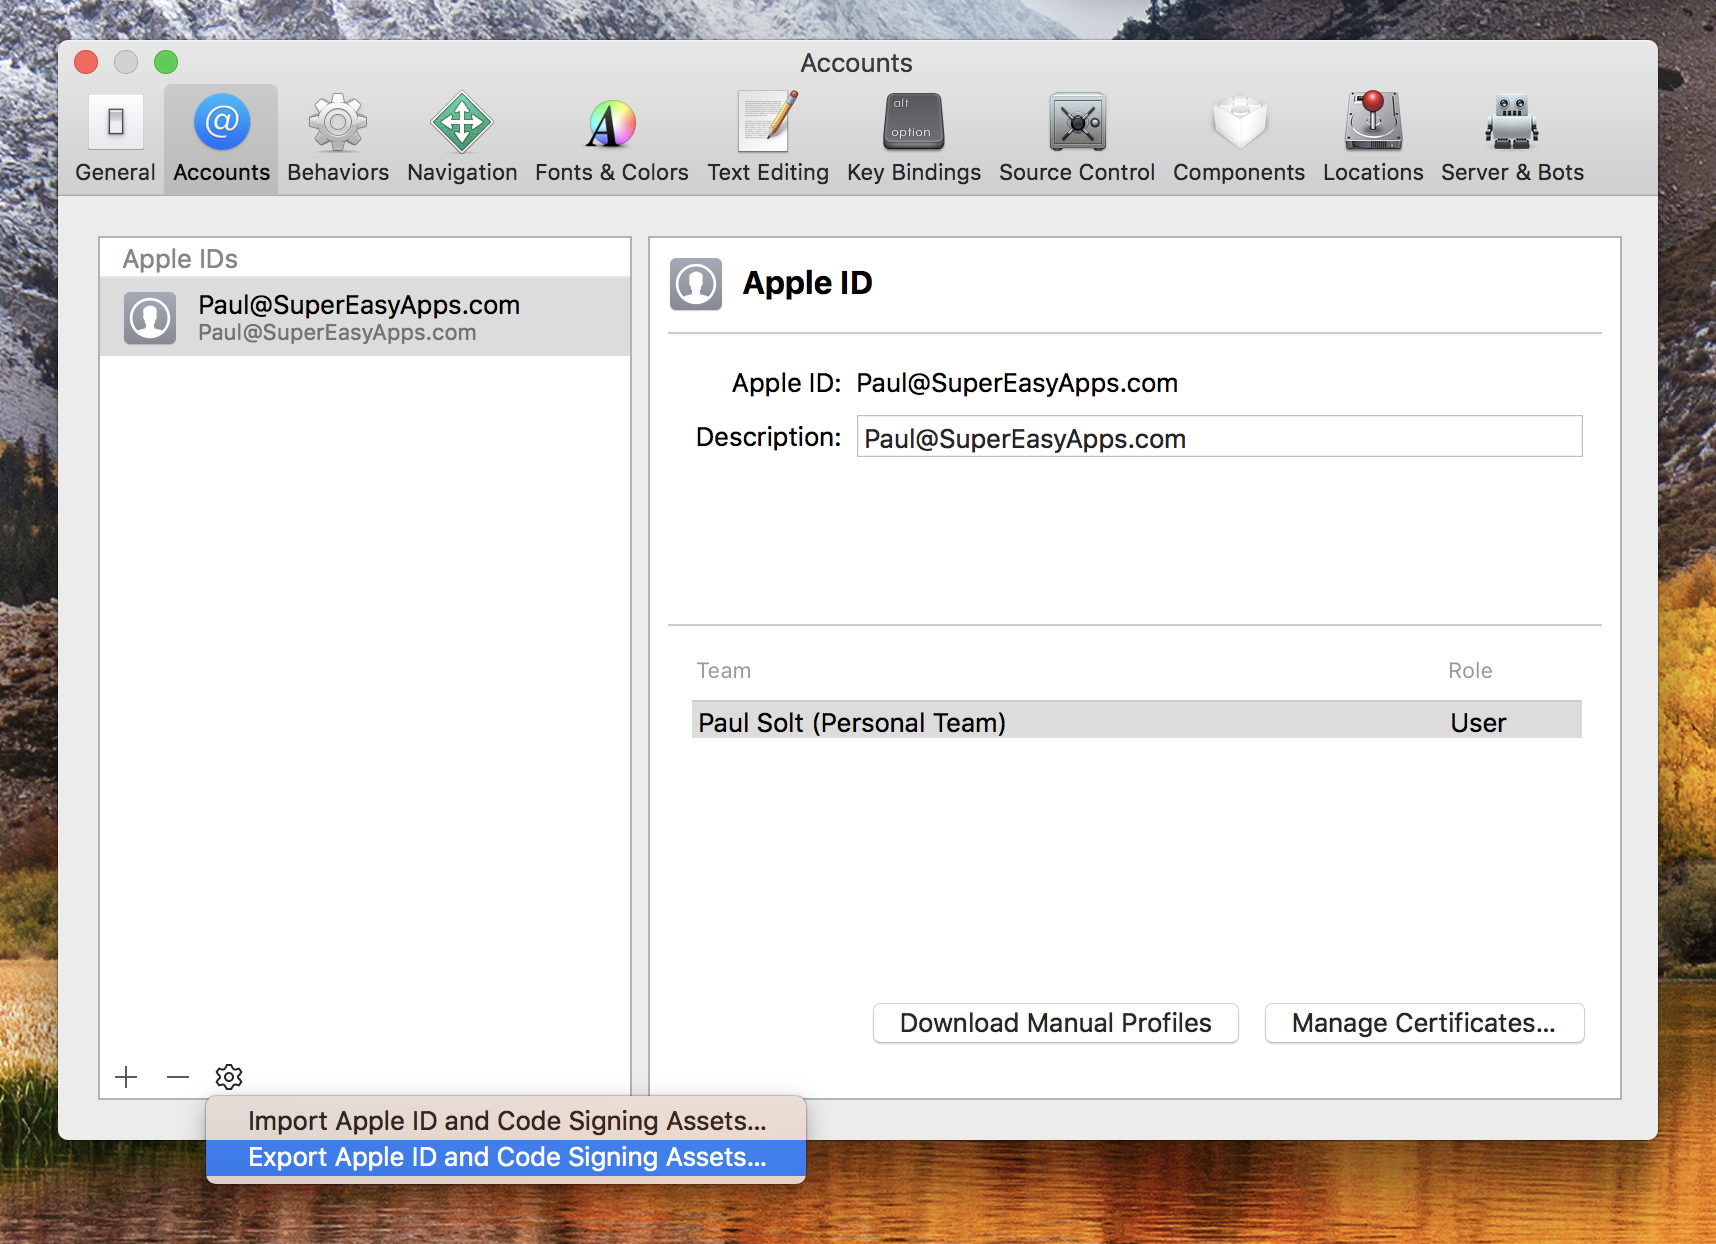 Export Apple ID and Code Signing Assets...